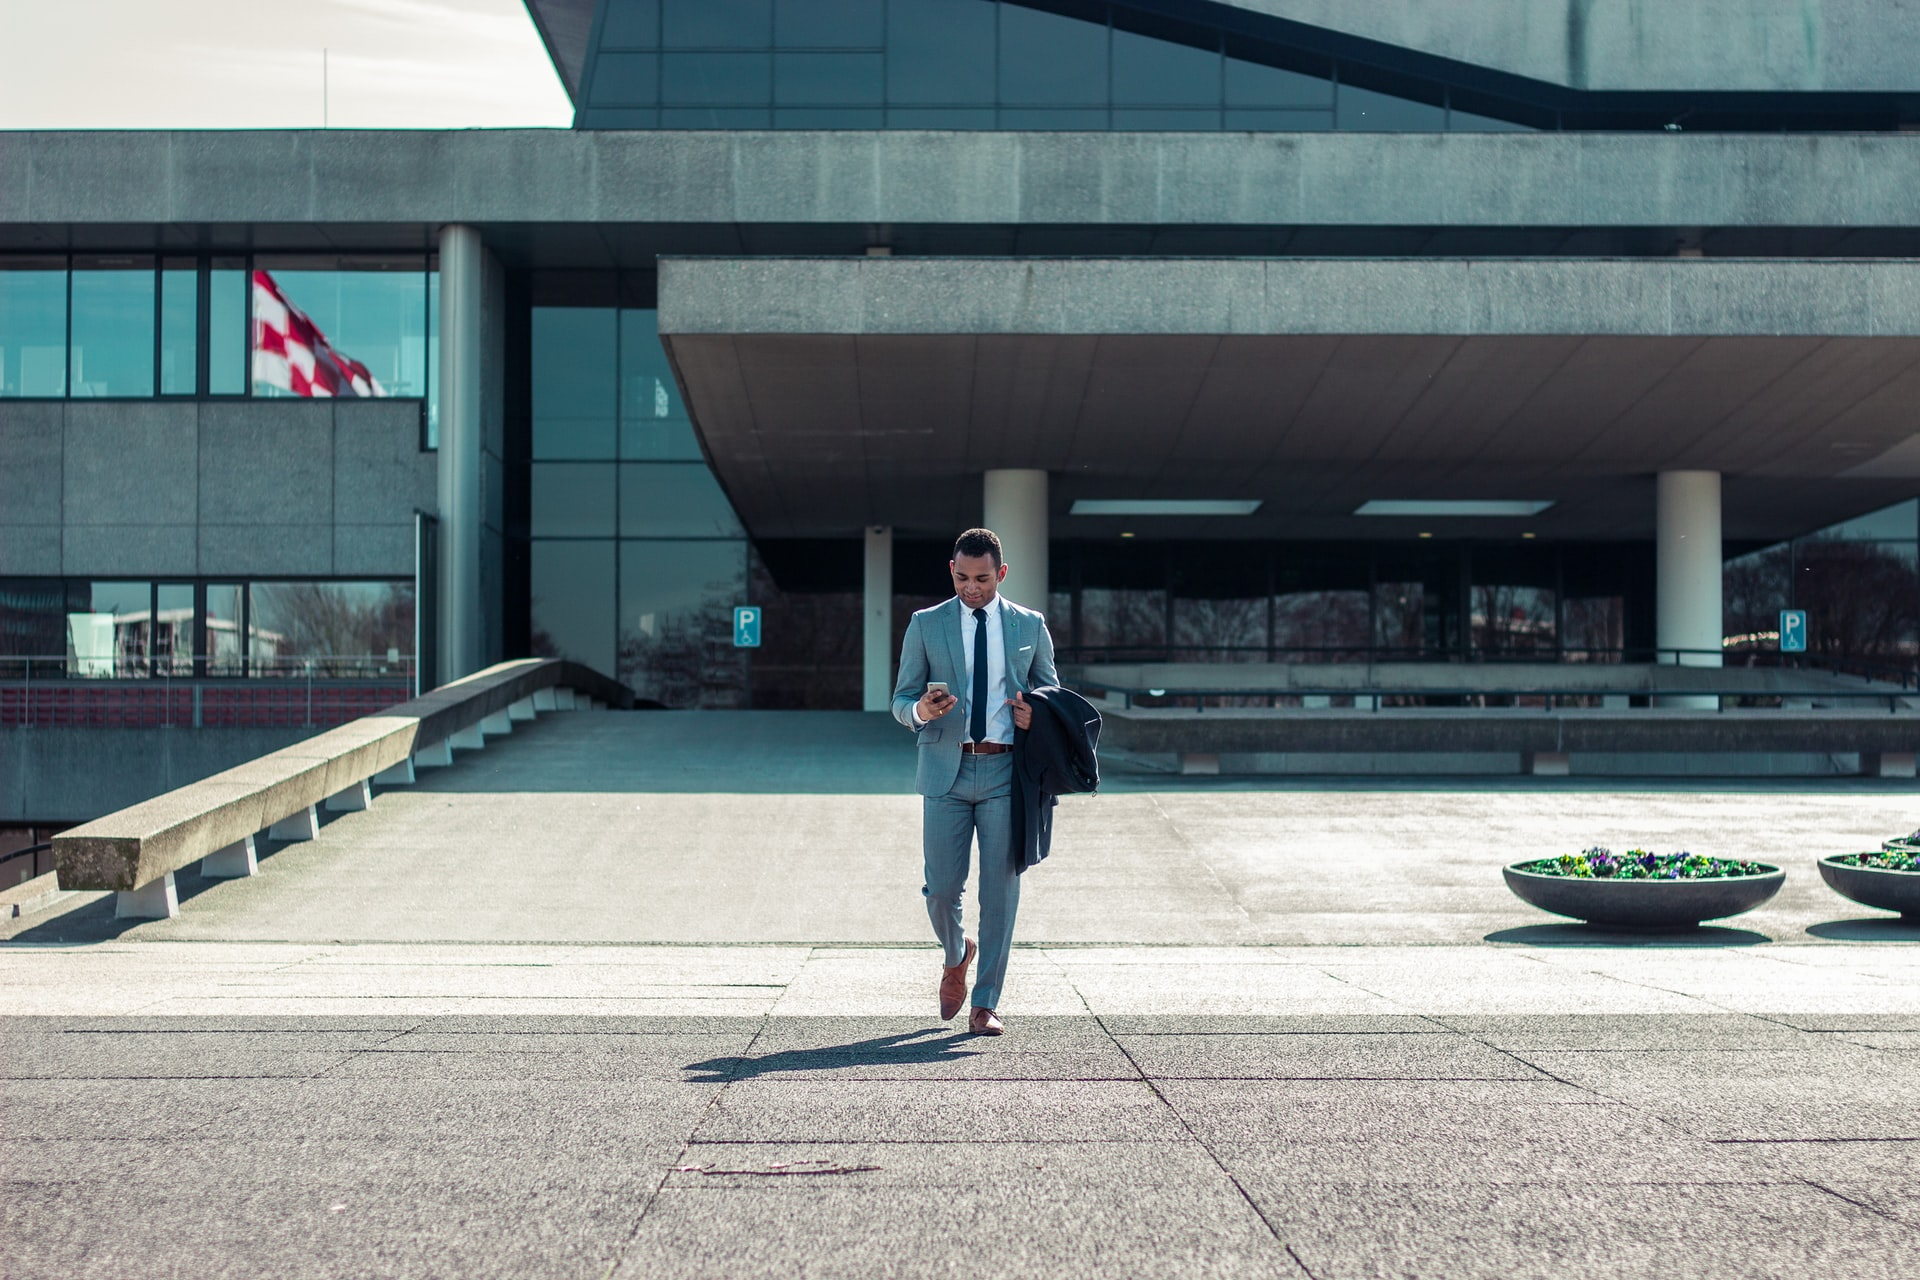 A business man walking in front of a big office building